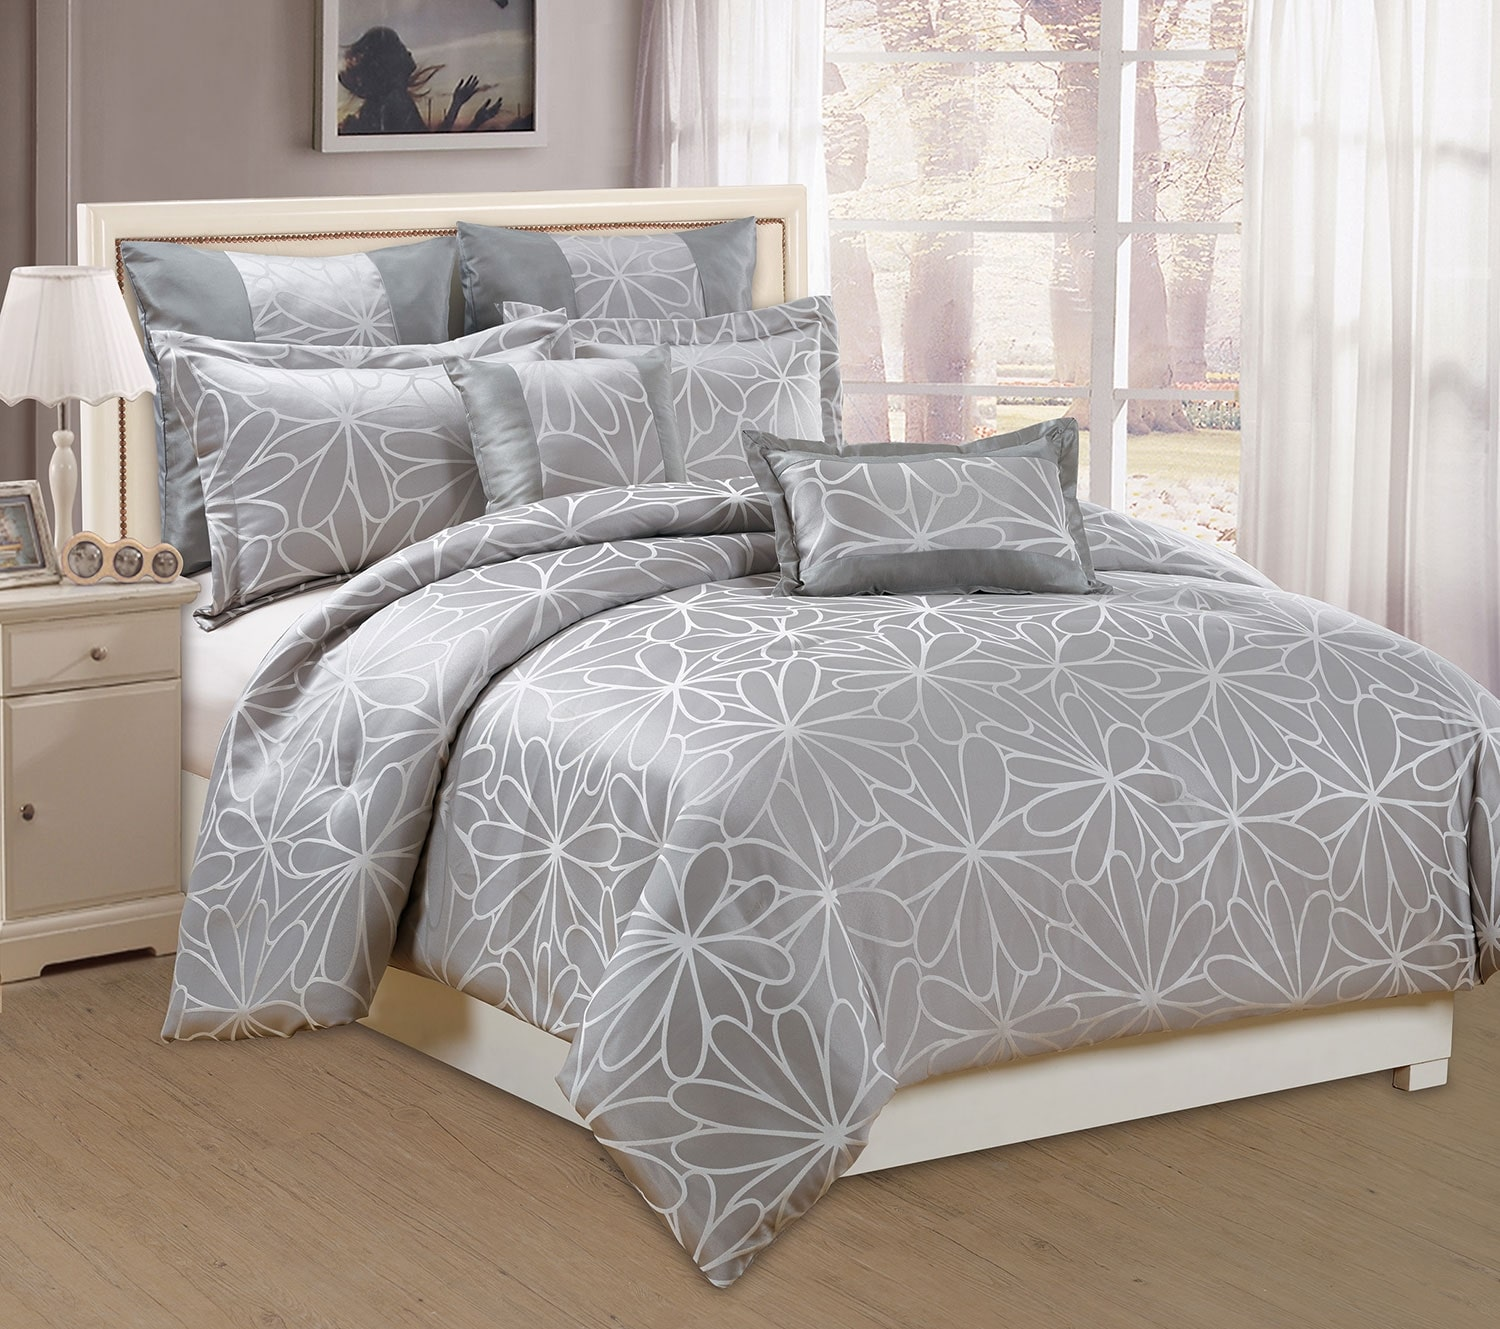 Mattresses and Bedding - Daisy 7-Piece King Comforter Set